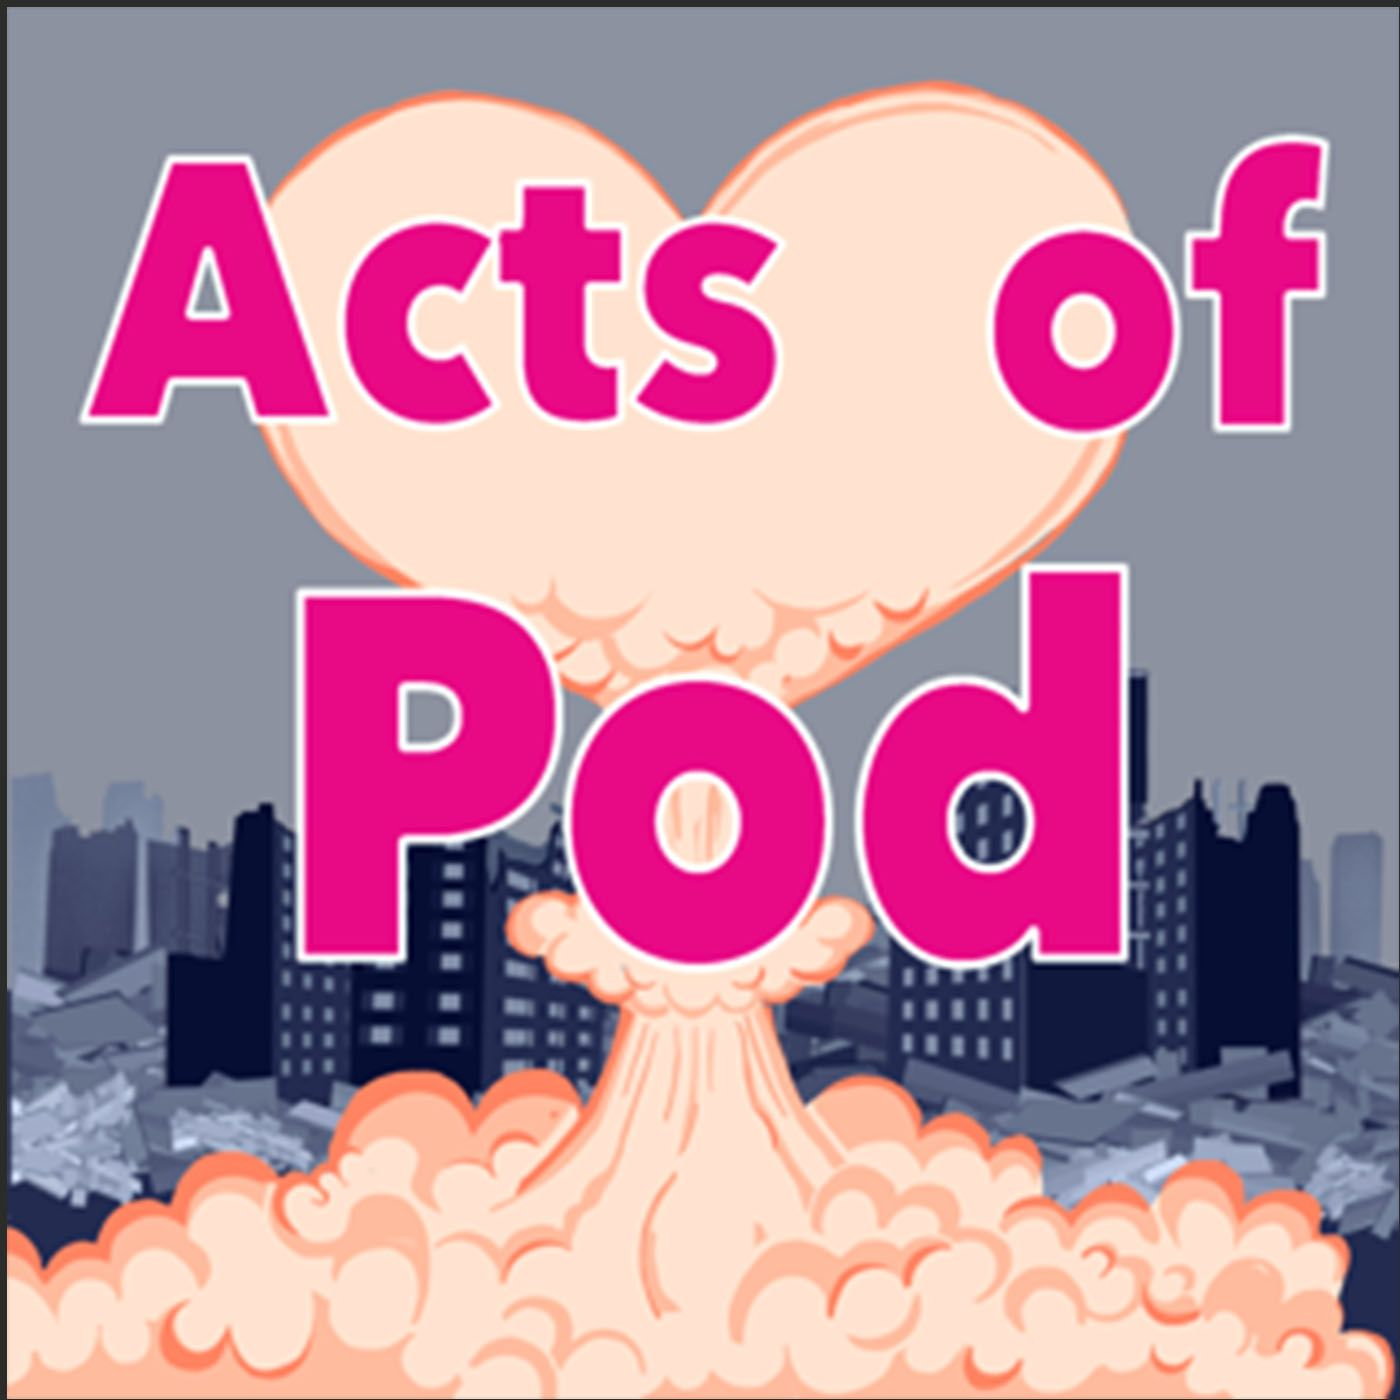 Acts of Pod